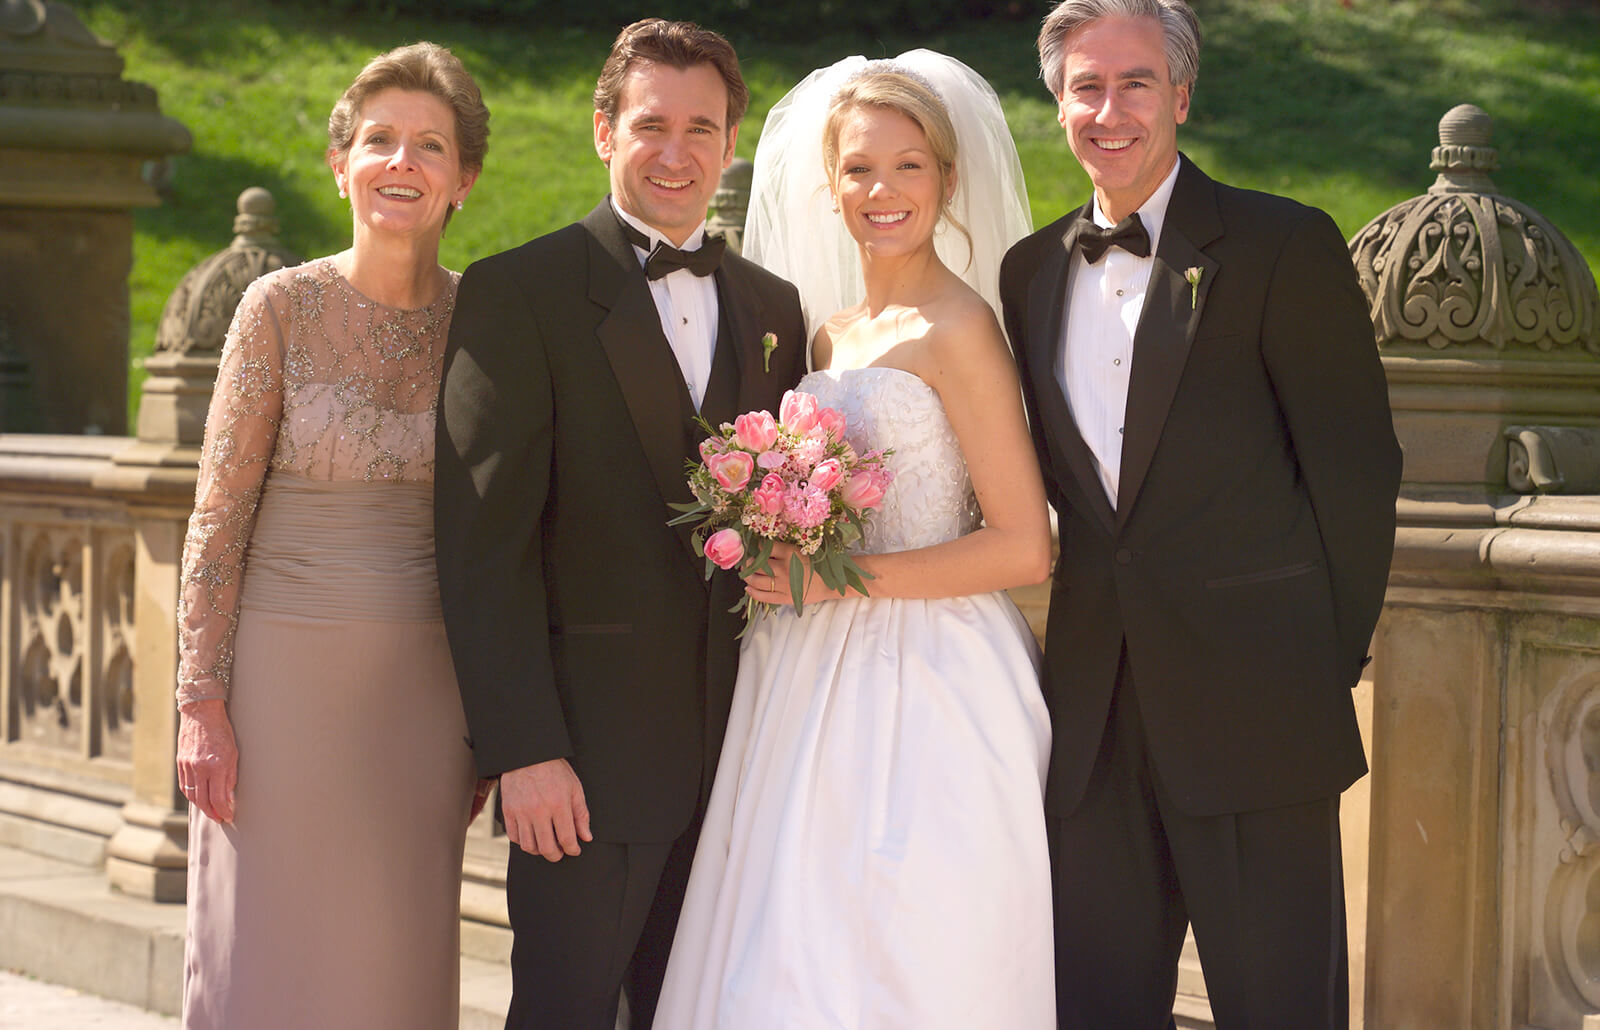 Fall Mother Of The Groom Dress Options Lovetoknow